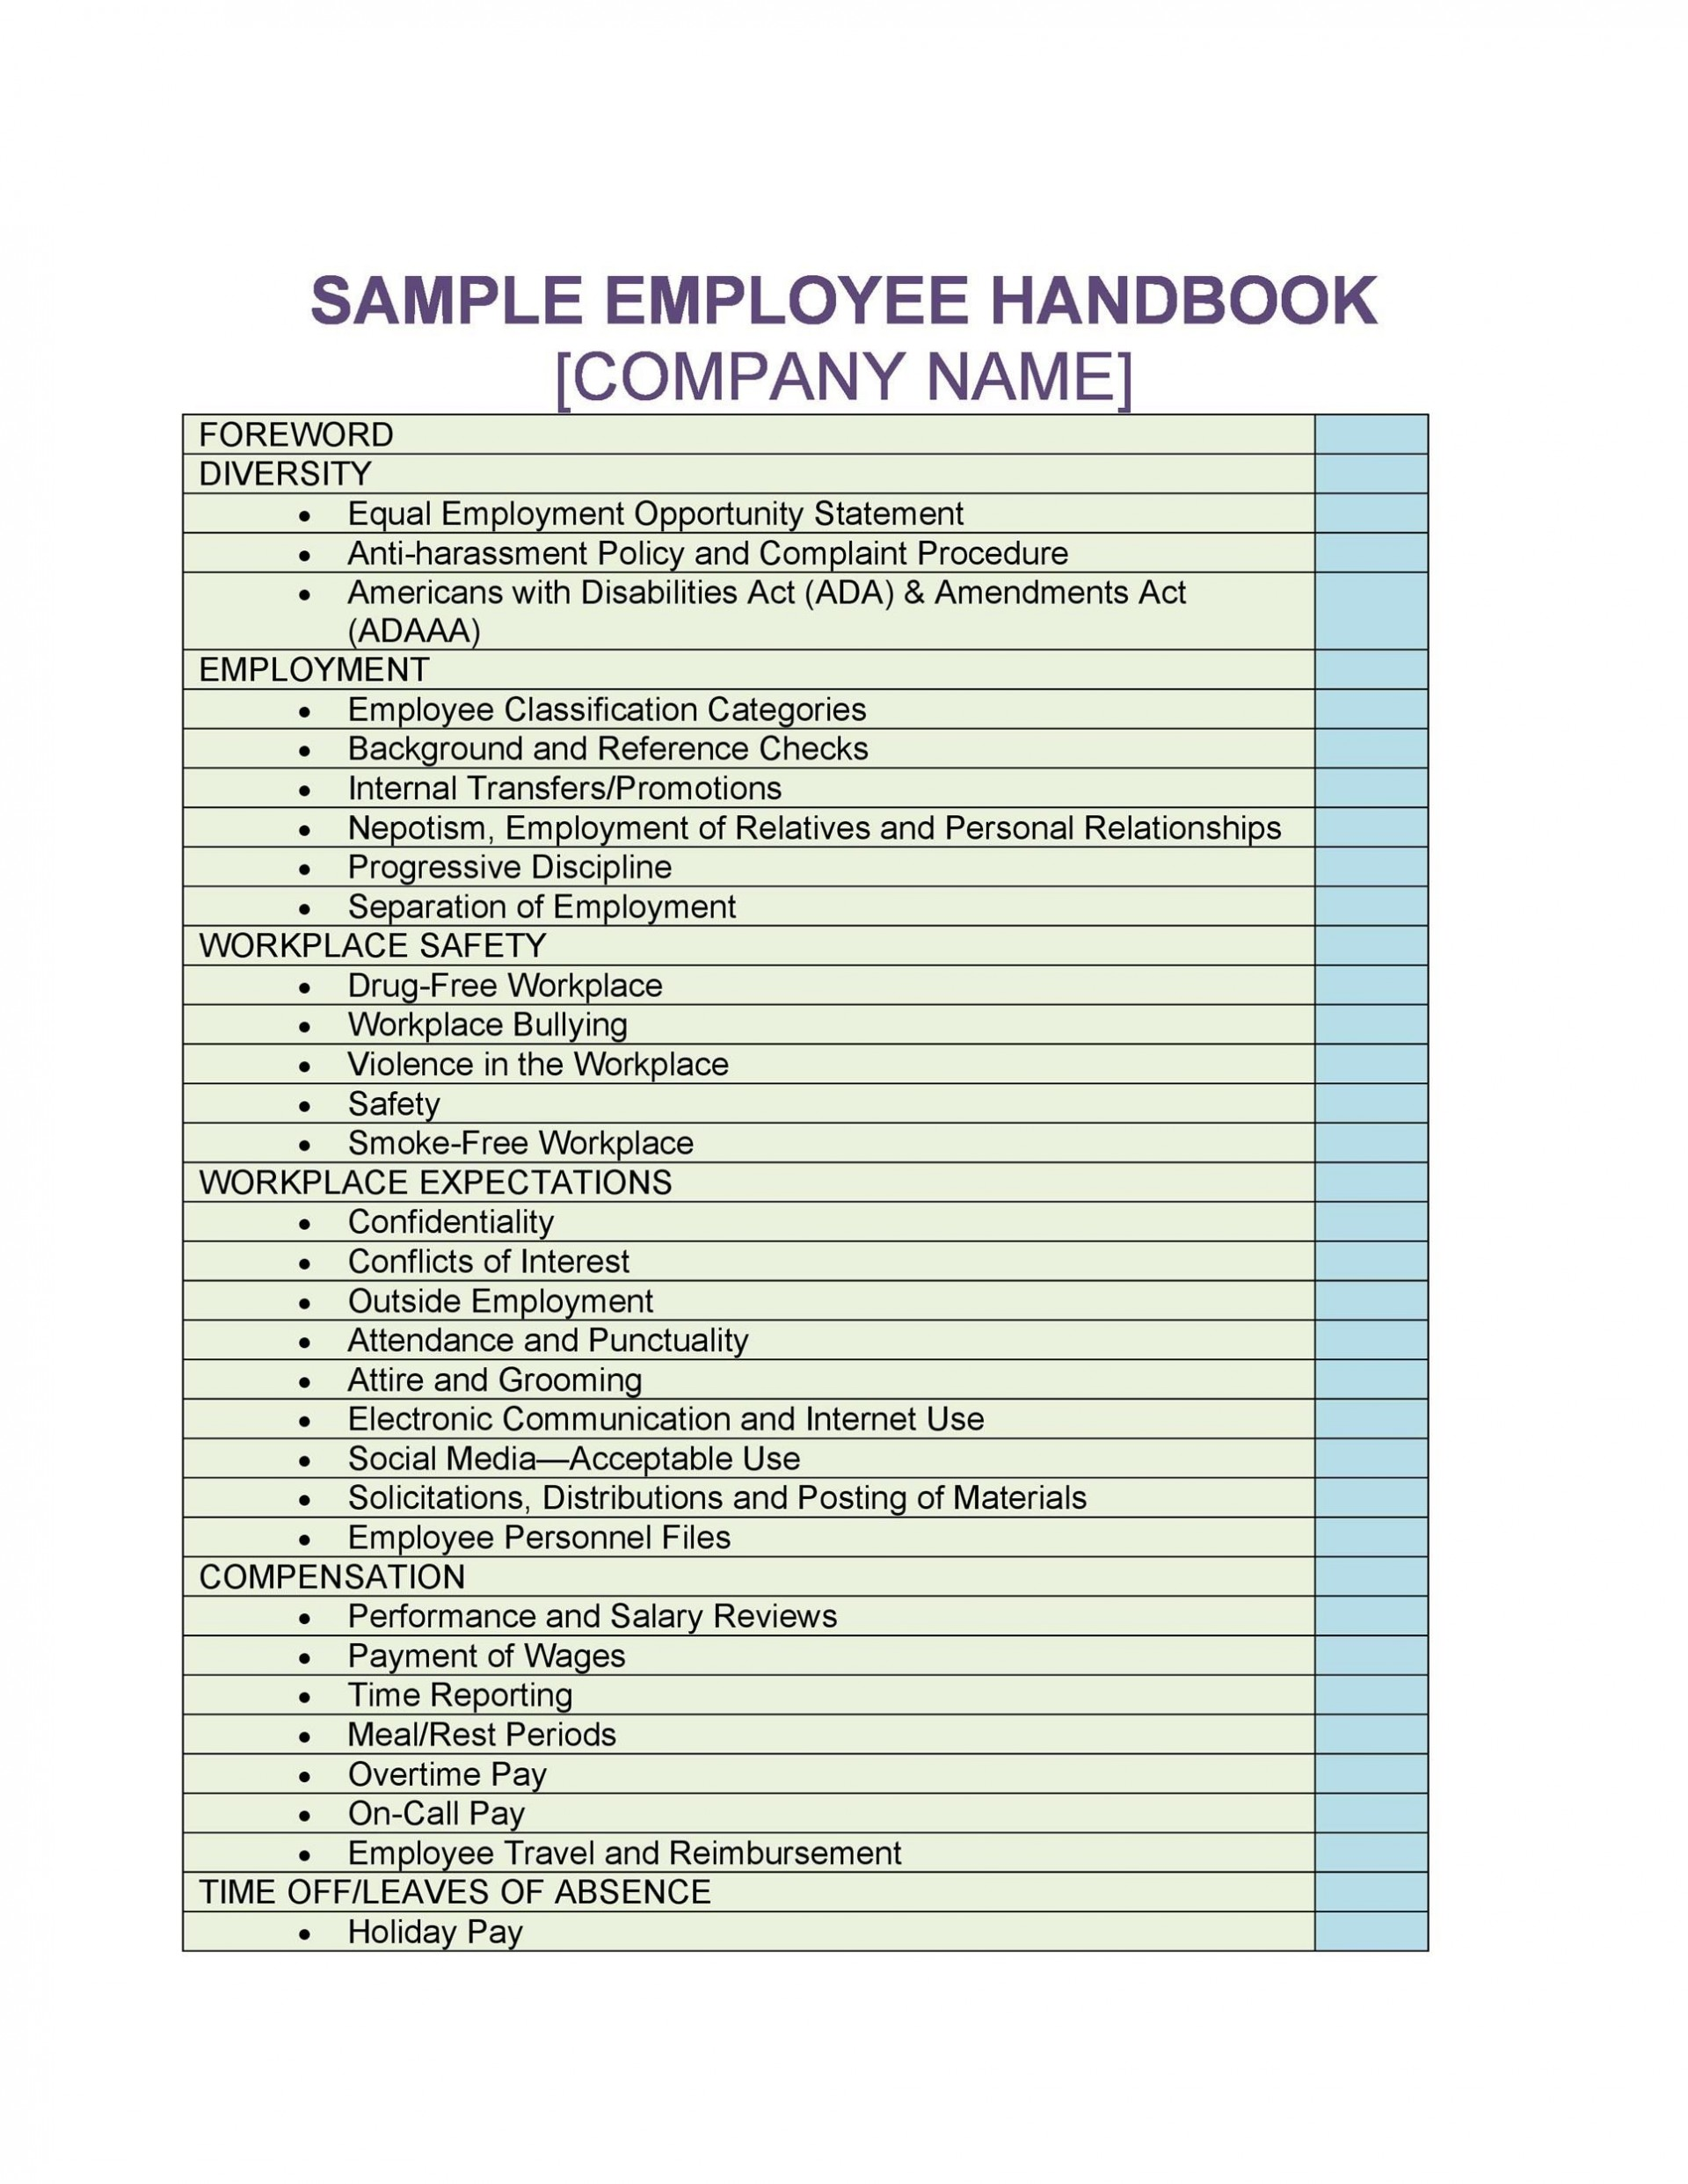 005 Staggering Employee Handbook Template Free Concept  Restaurant Download Induction Manual Sample In Singapore1920